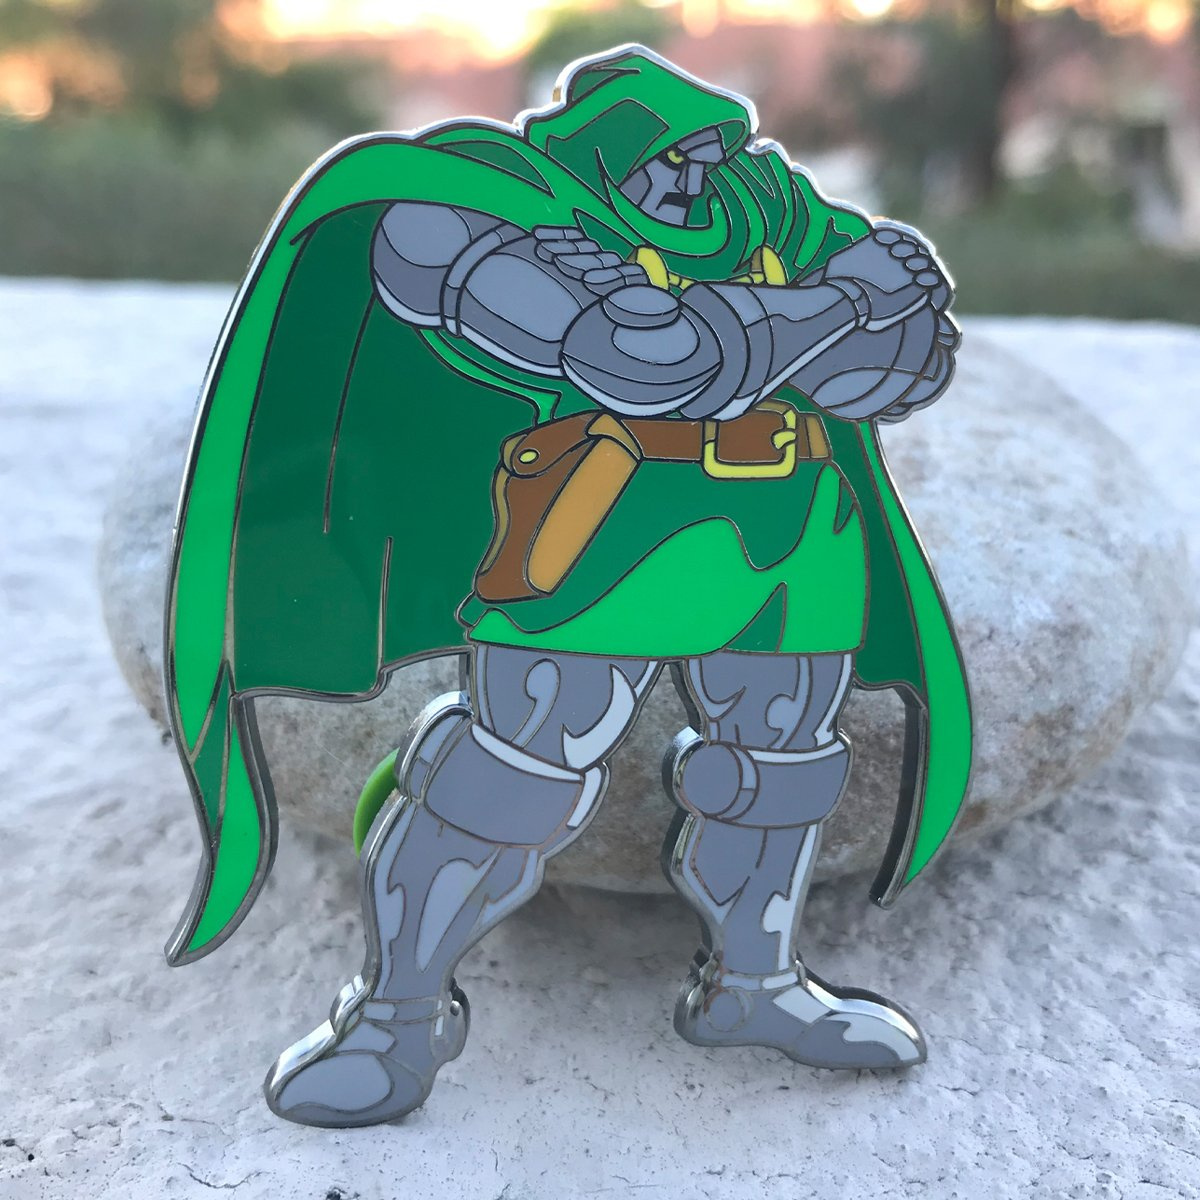 ClayGrahamArt VS PinPlugged Round 1 - DR. DOOM VS STRIDER - Pin Plugged